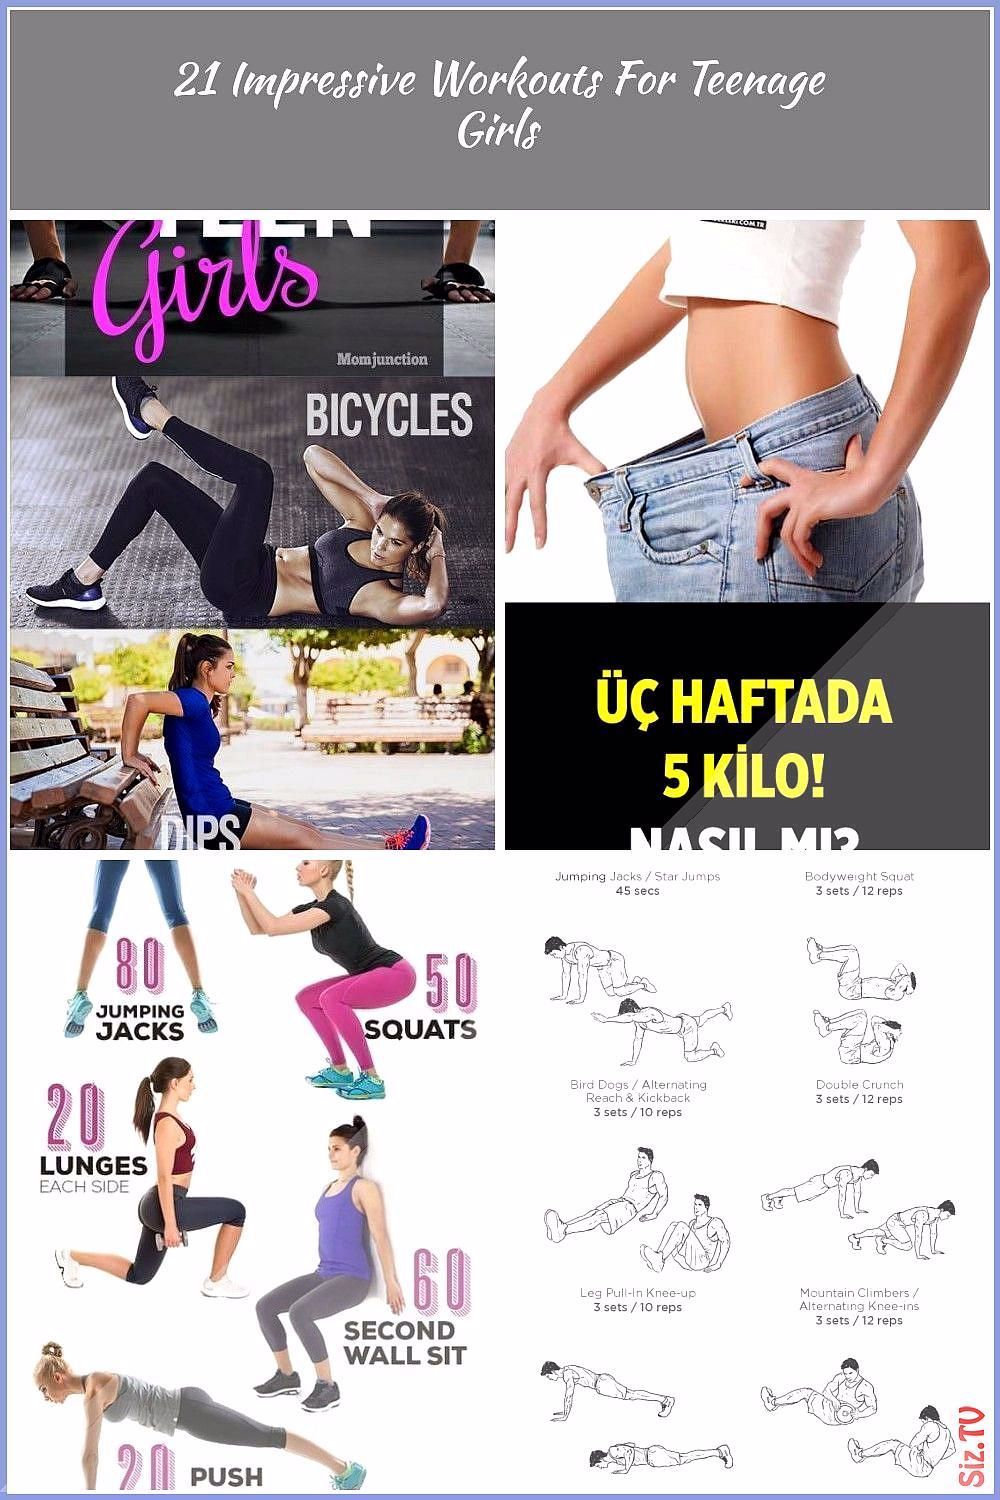 workout routine for teenagers workout workoutroutine Working out is beneficial to teens Here are som...